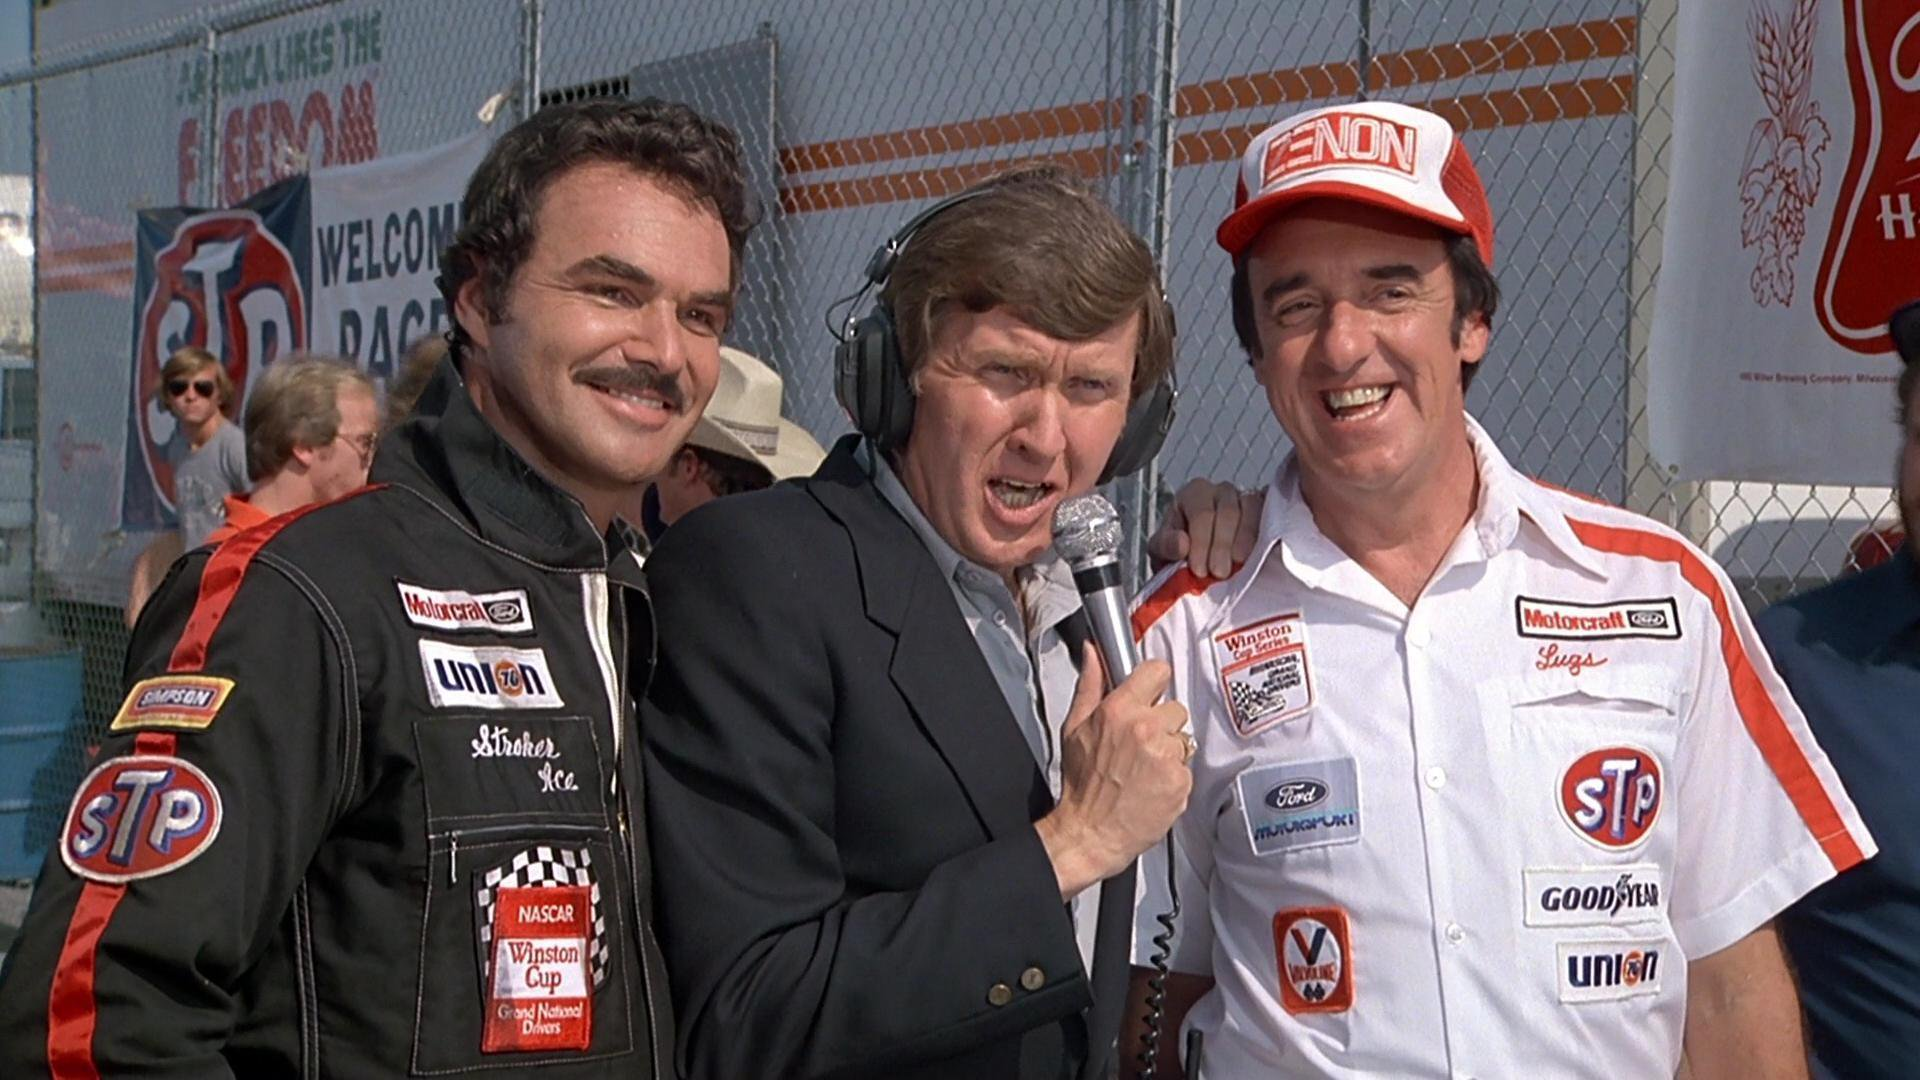 Happy 87th Birthday to Jim Nabors! Stroker Ace and Lugs Harvey deserve to join Ken Squier in